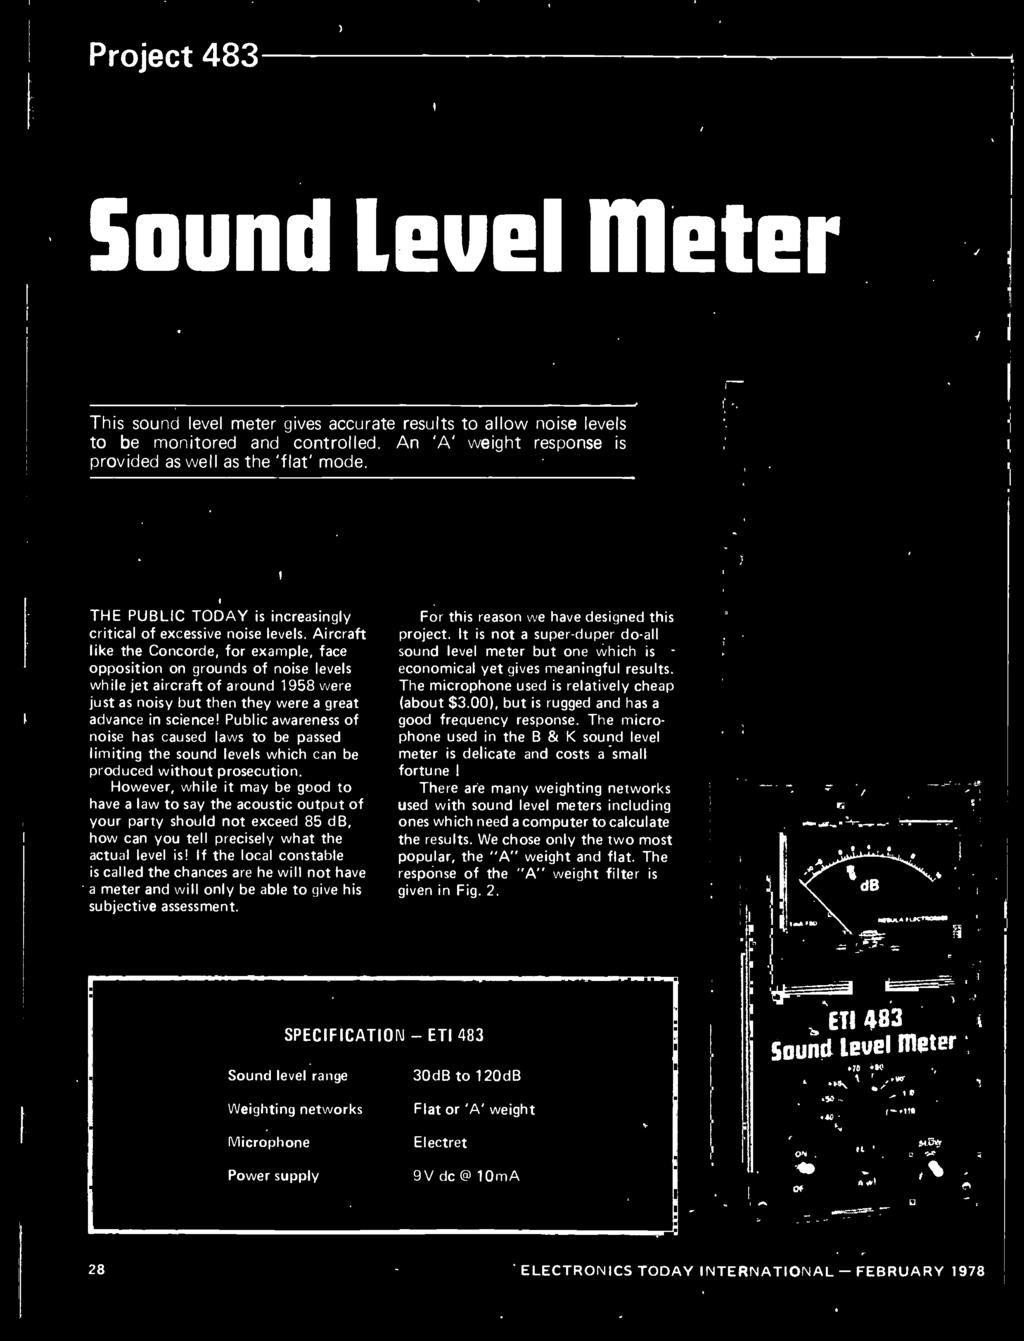 However, while it may be good to have a law to say the acoustic output of your party should not exceed 85 db, how can you tell precisely what the actual level is!